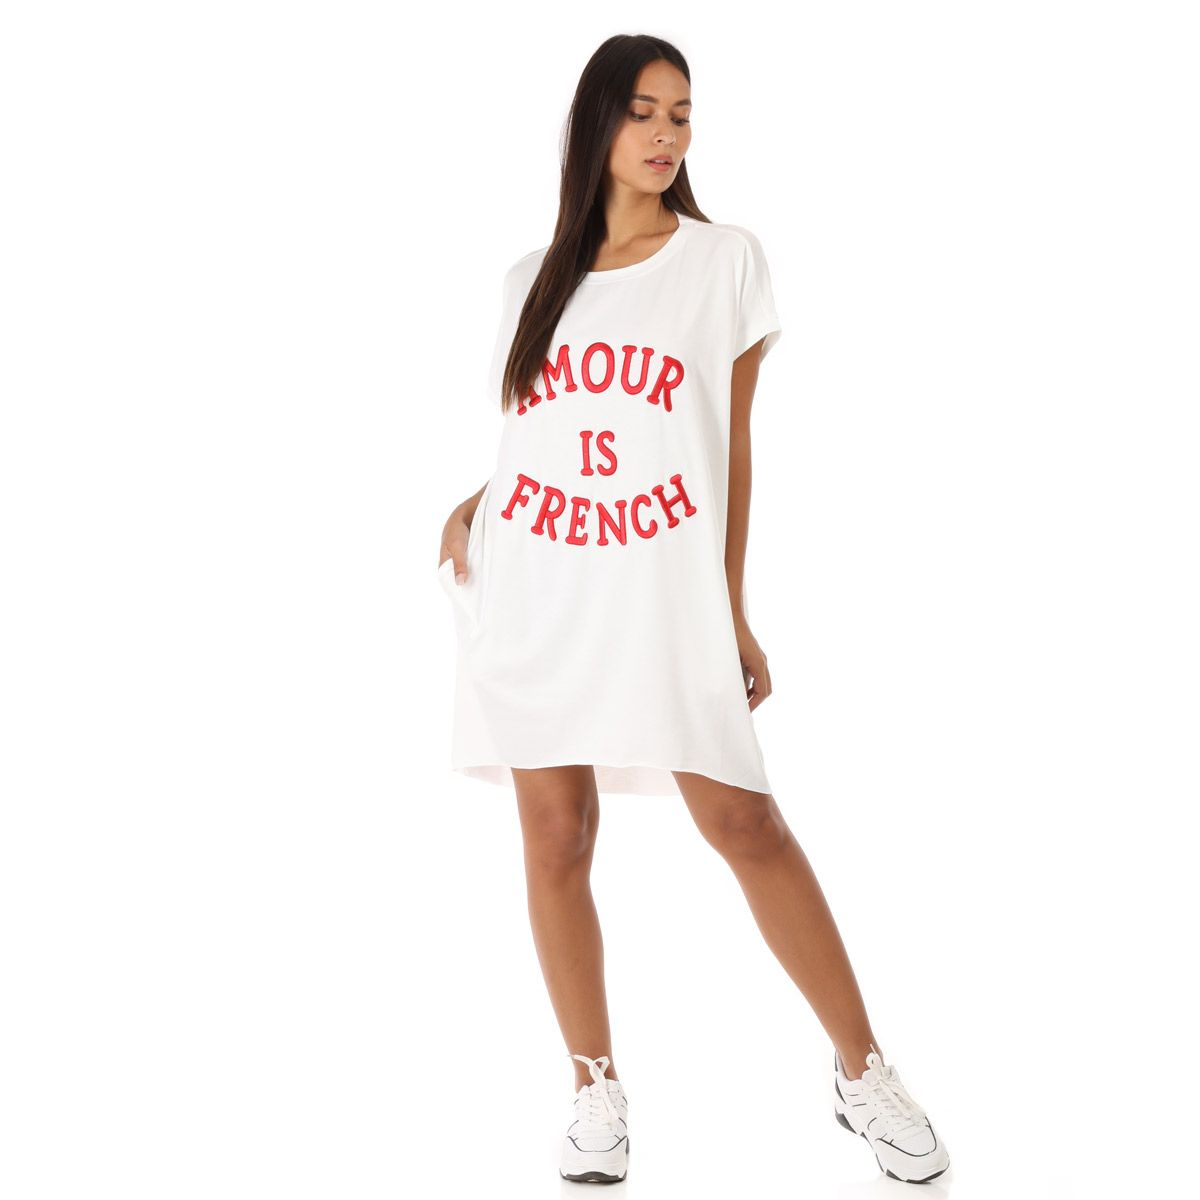 "Robe t-shirt blanche brodée ""Amour is french"" rouge"